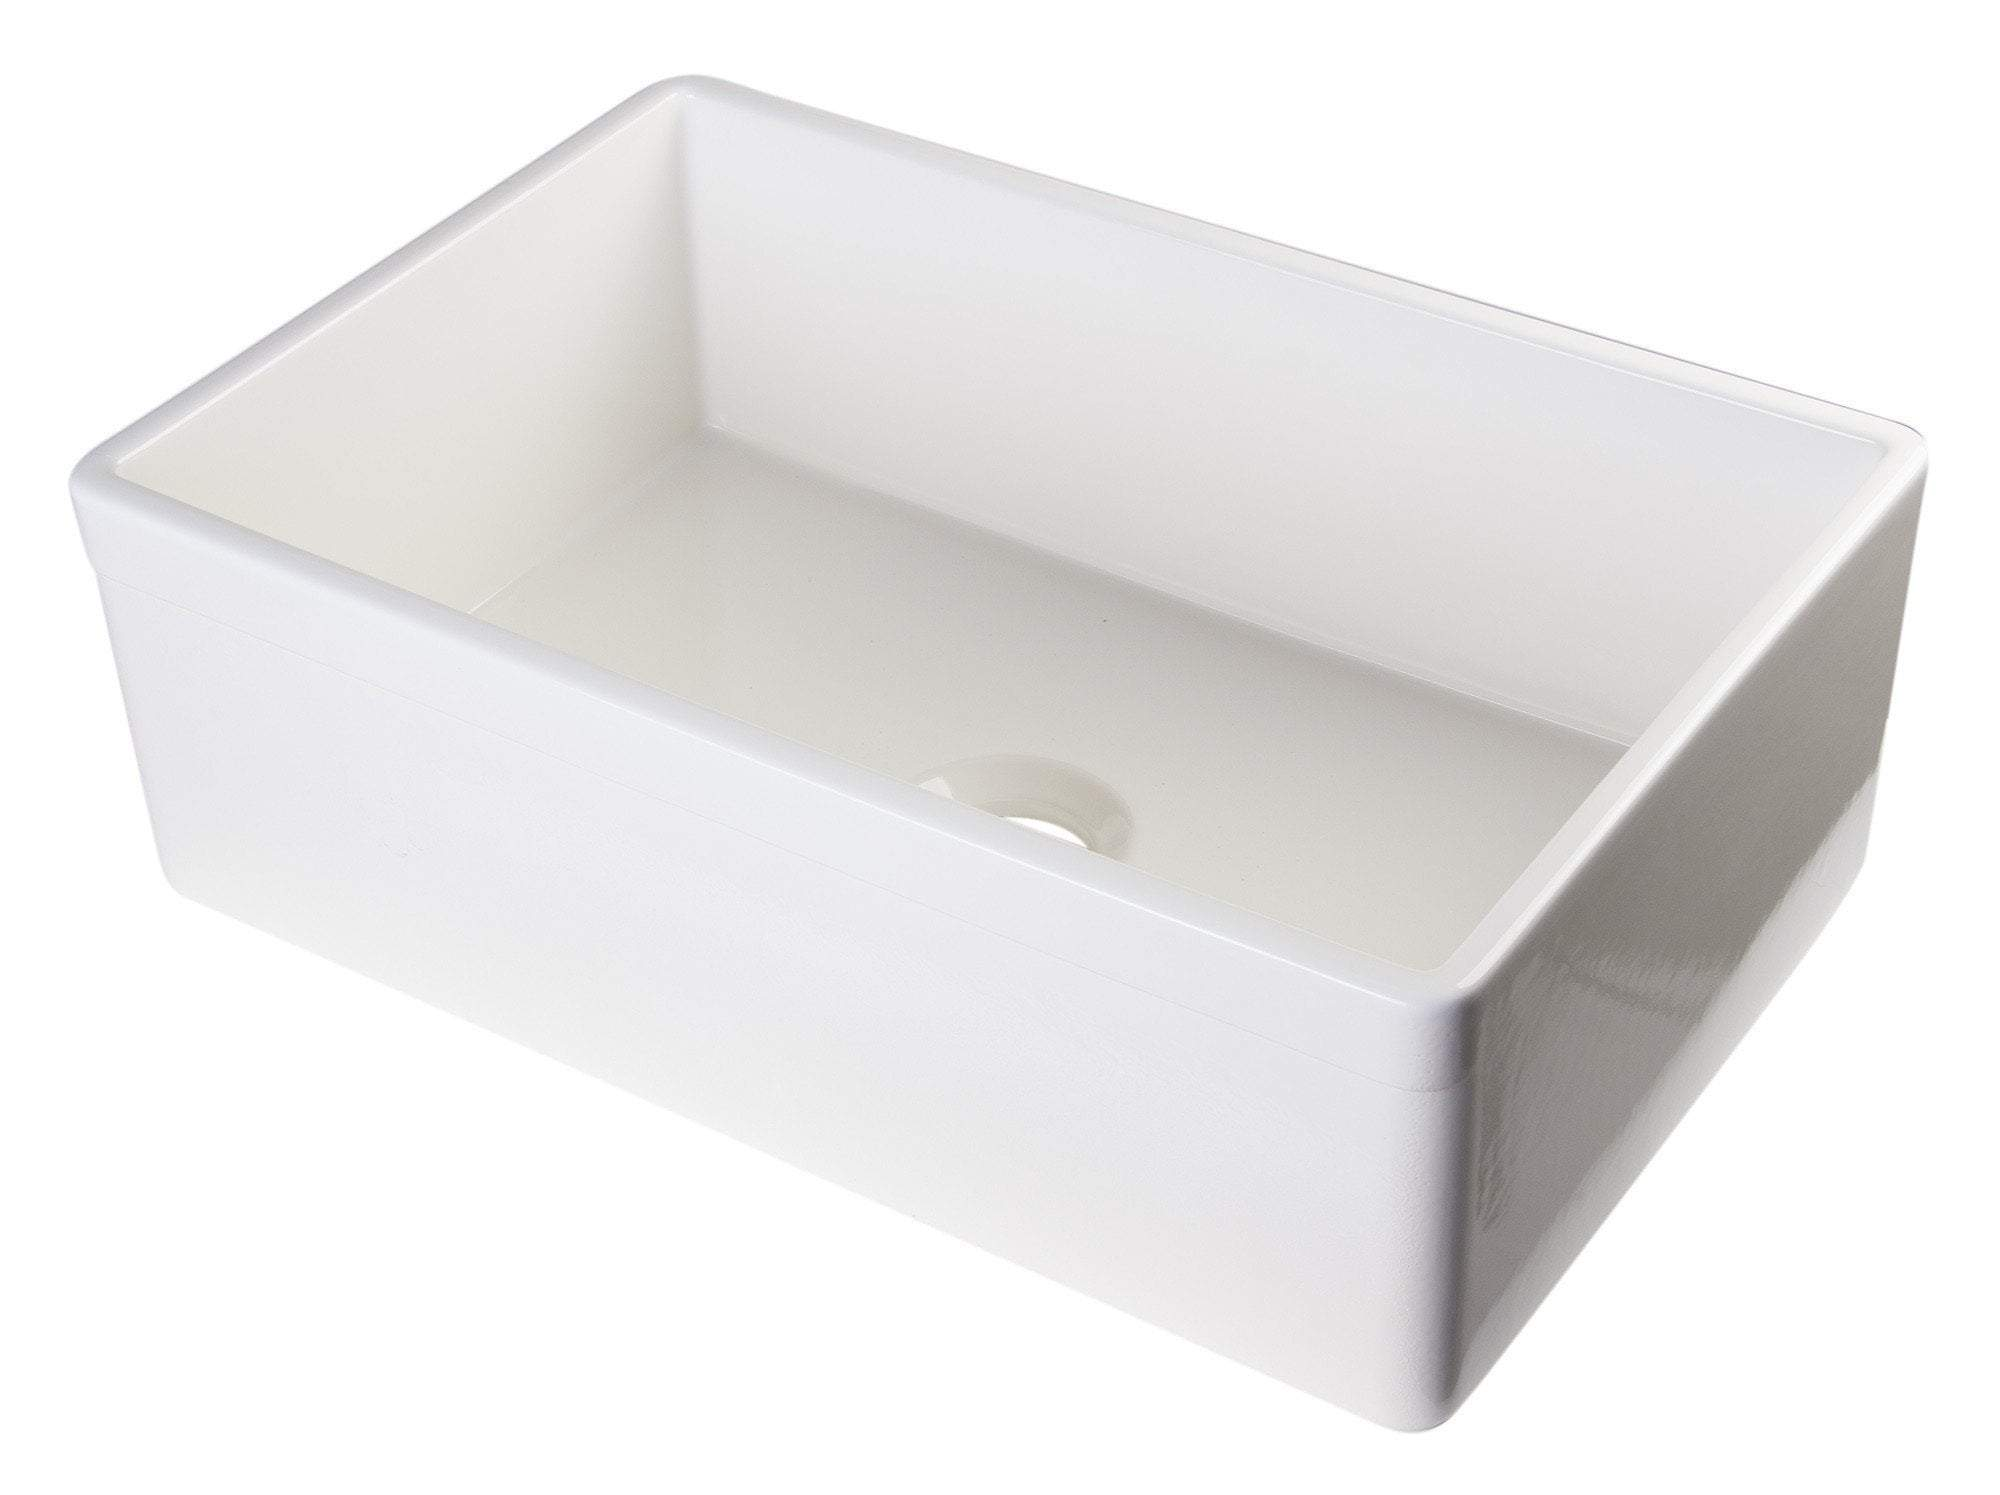 alfi biscuit 30 contemporary smooth fireclay farmhouse kitchen sink ab510 b